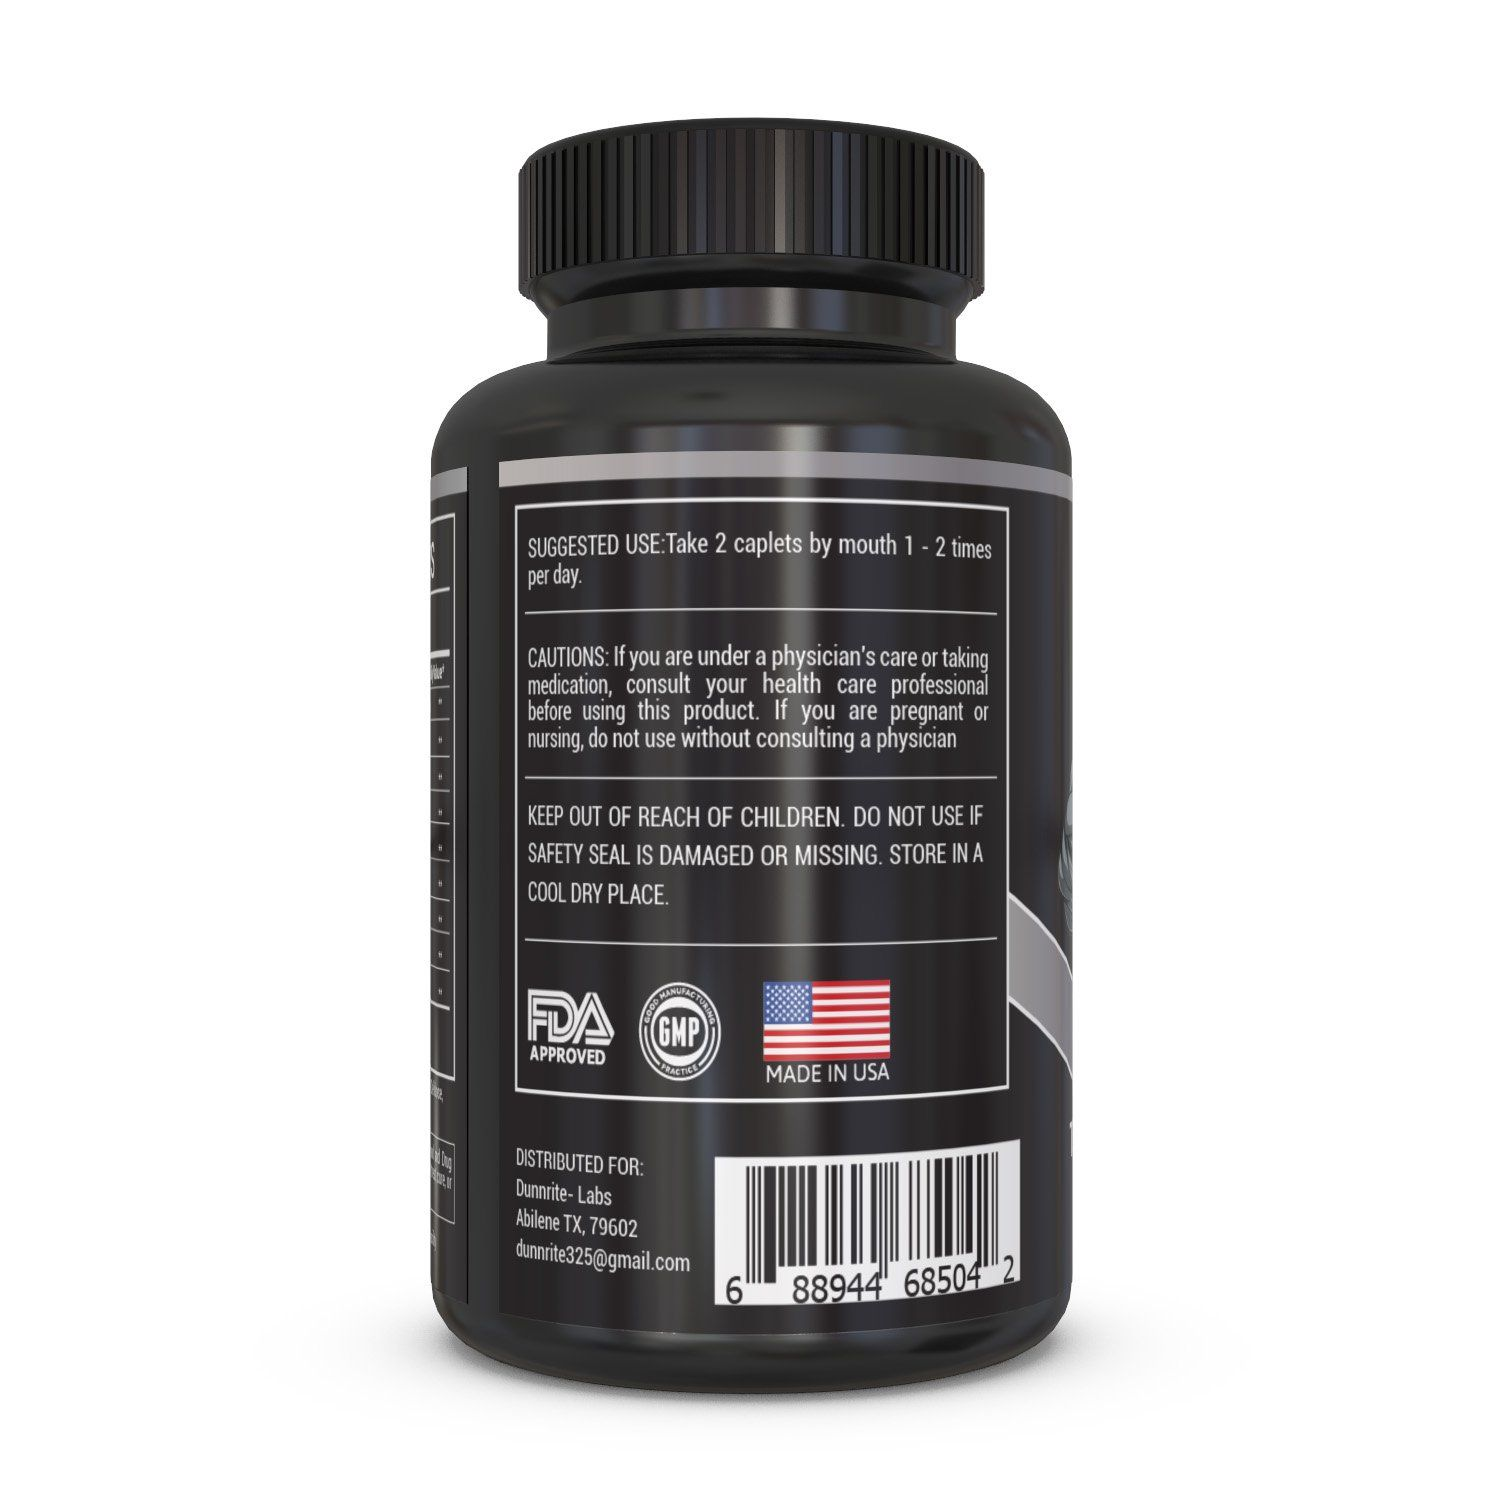 Pin on Libido supplements for men